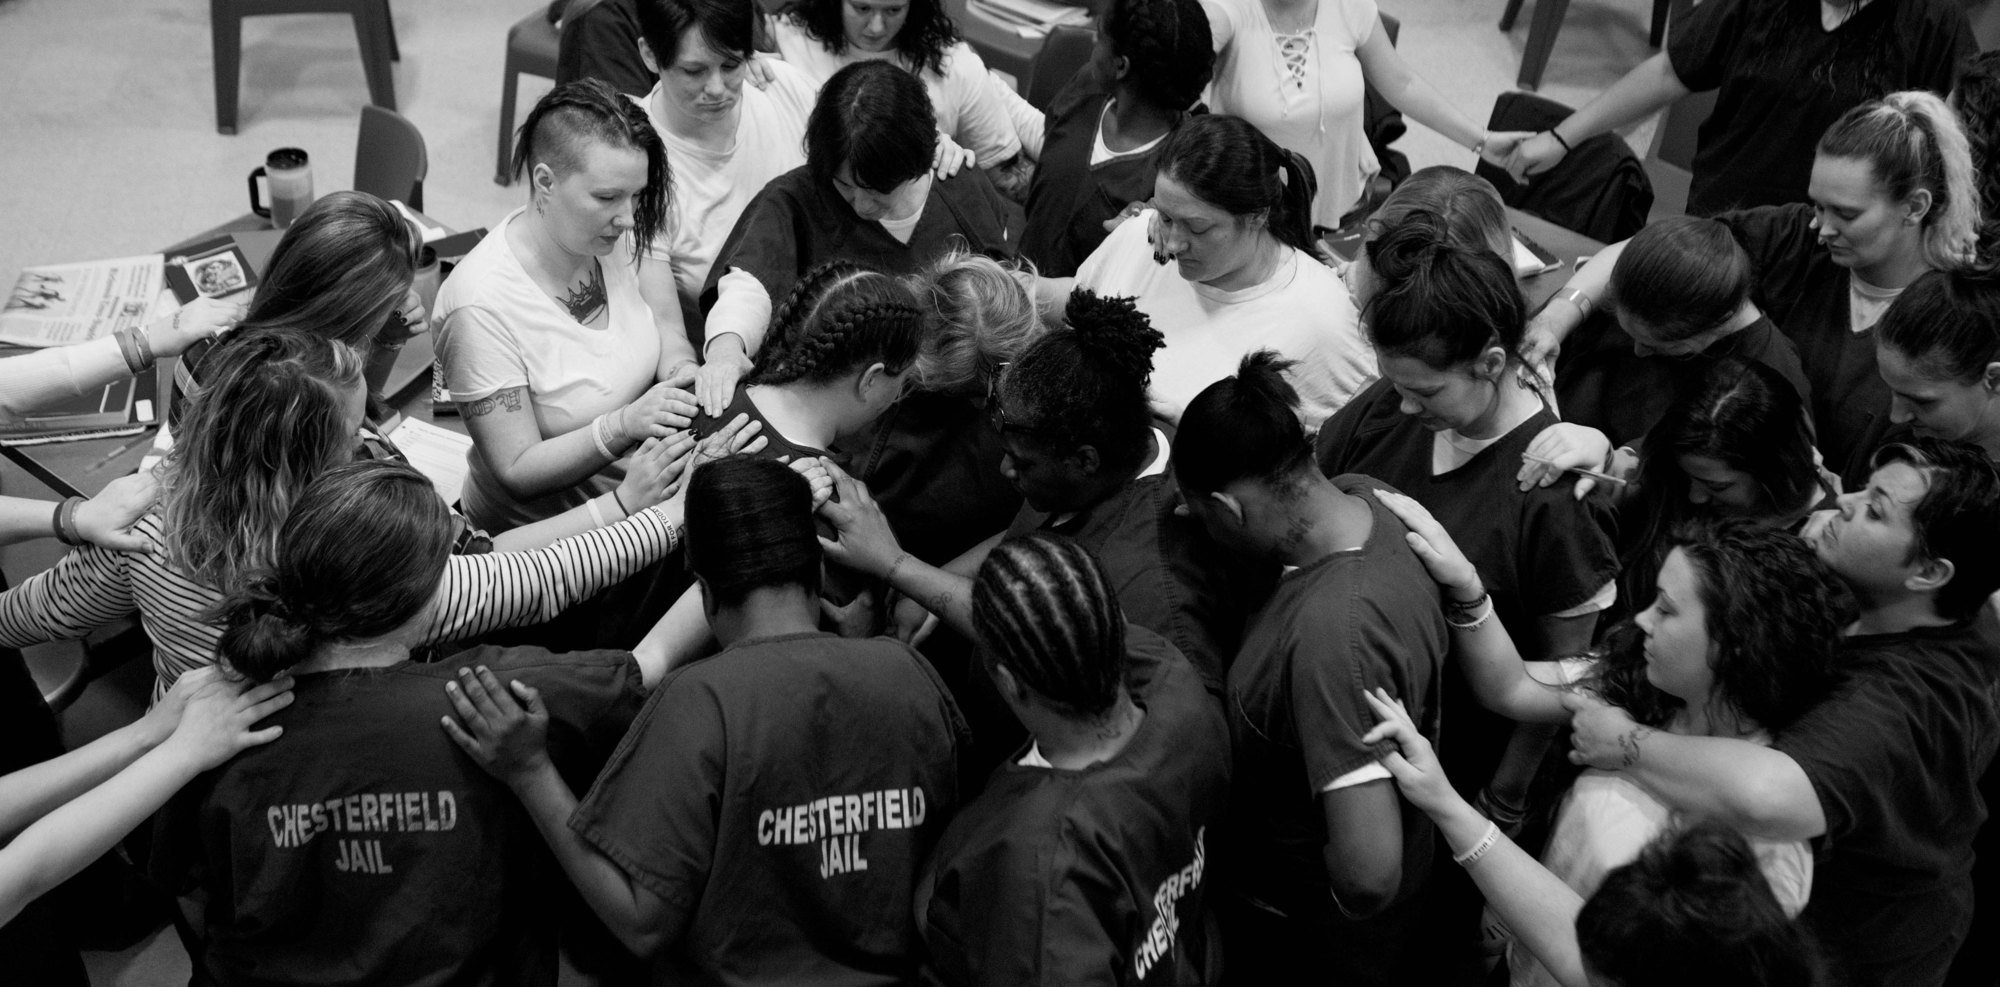 Members of the Heroin Addiction Recovery Program at the Chesterfield County Jail in Virginia pray for a participant as she was preparing to be released in November of 2017.